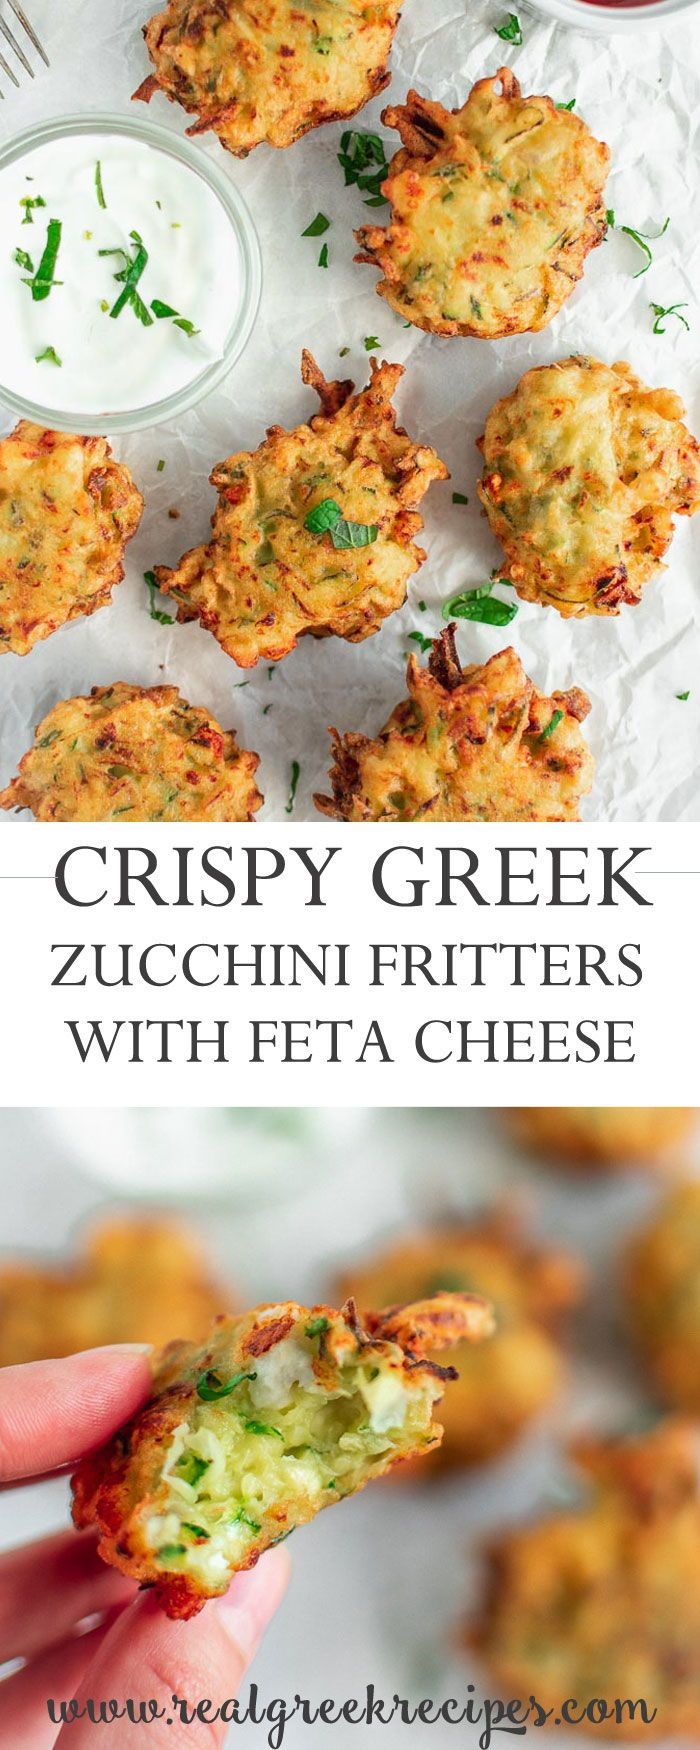 Crispy Zucchini Fritters Recipe With Feta Cheese - Real Greek Recipes